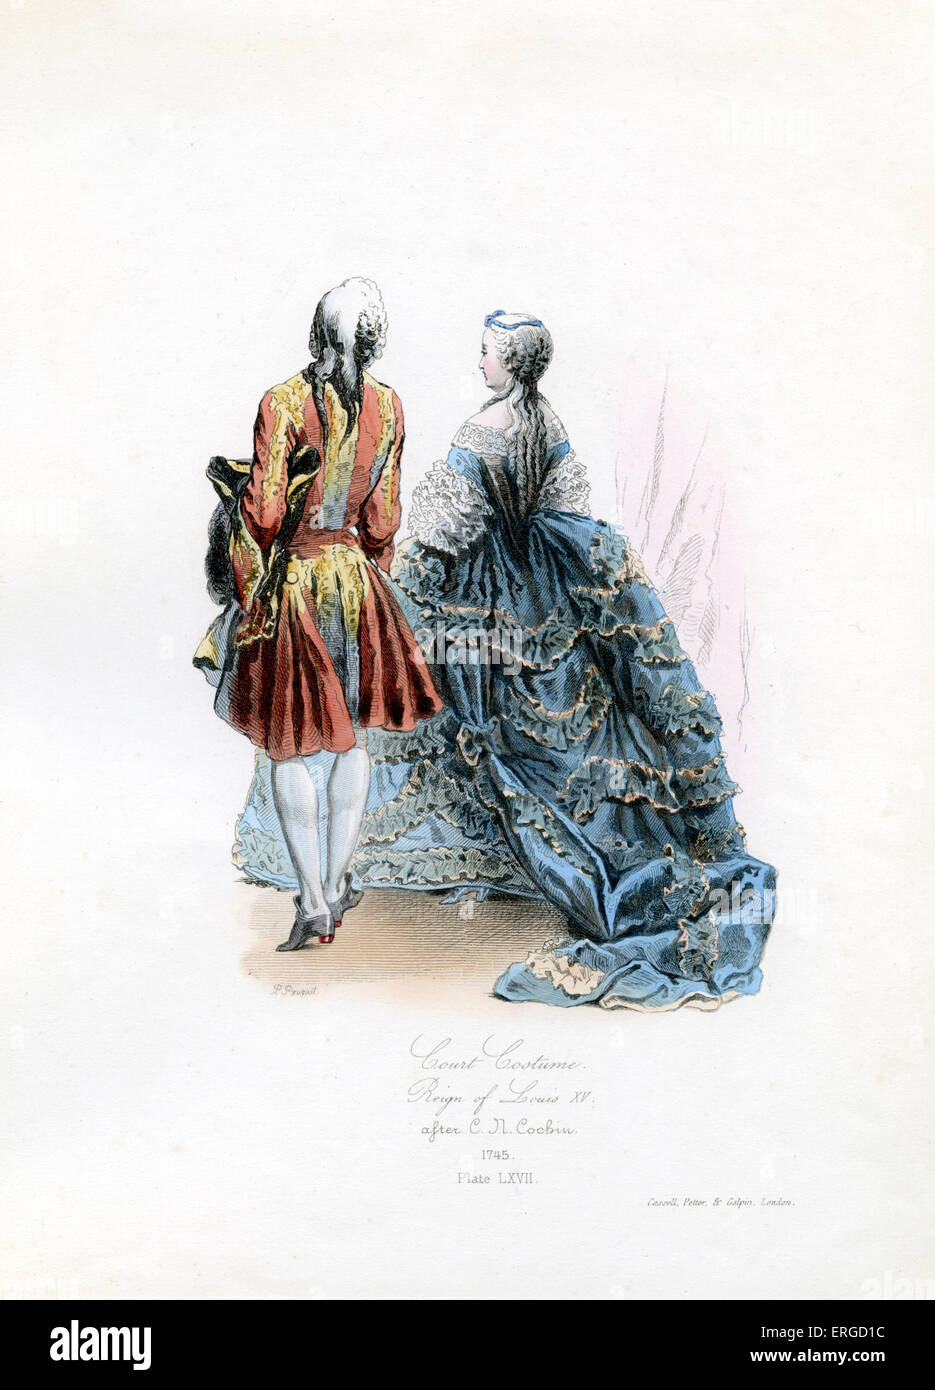 Court Costume in the reign of Louis XV, 1745 - from engraving by Polidor Pauquet after C. R. Cochin. LXV, King of - Stock Image